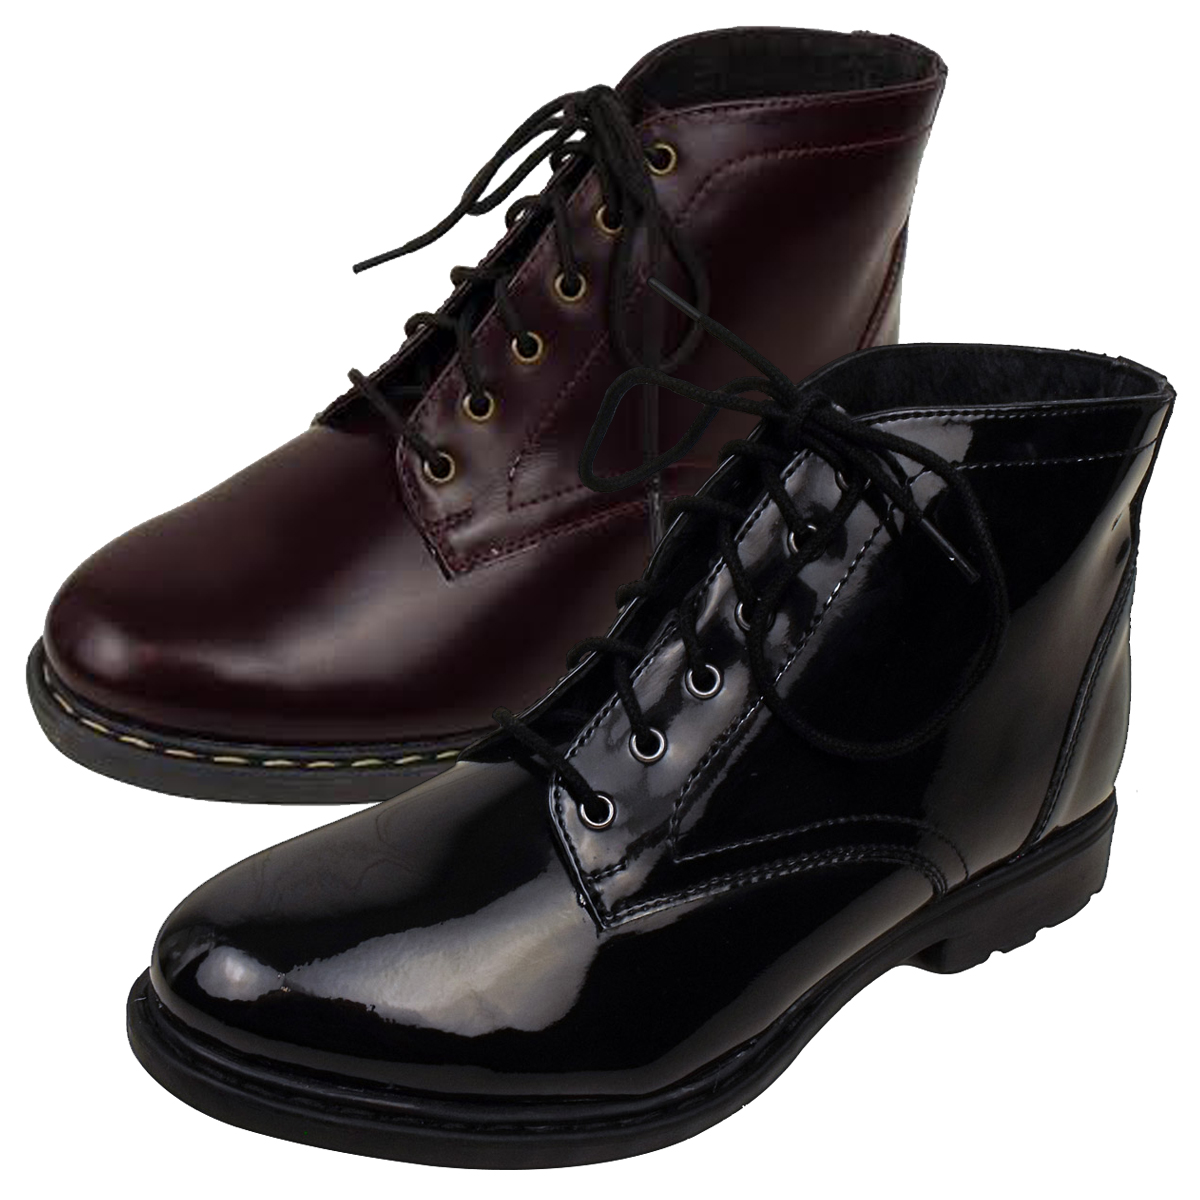 Latest Styles In Womens Shoes